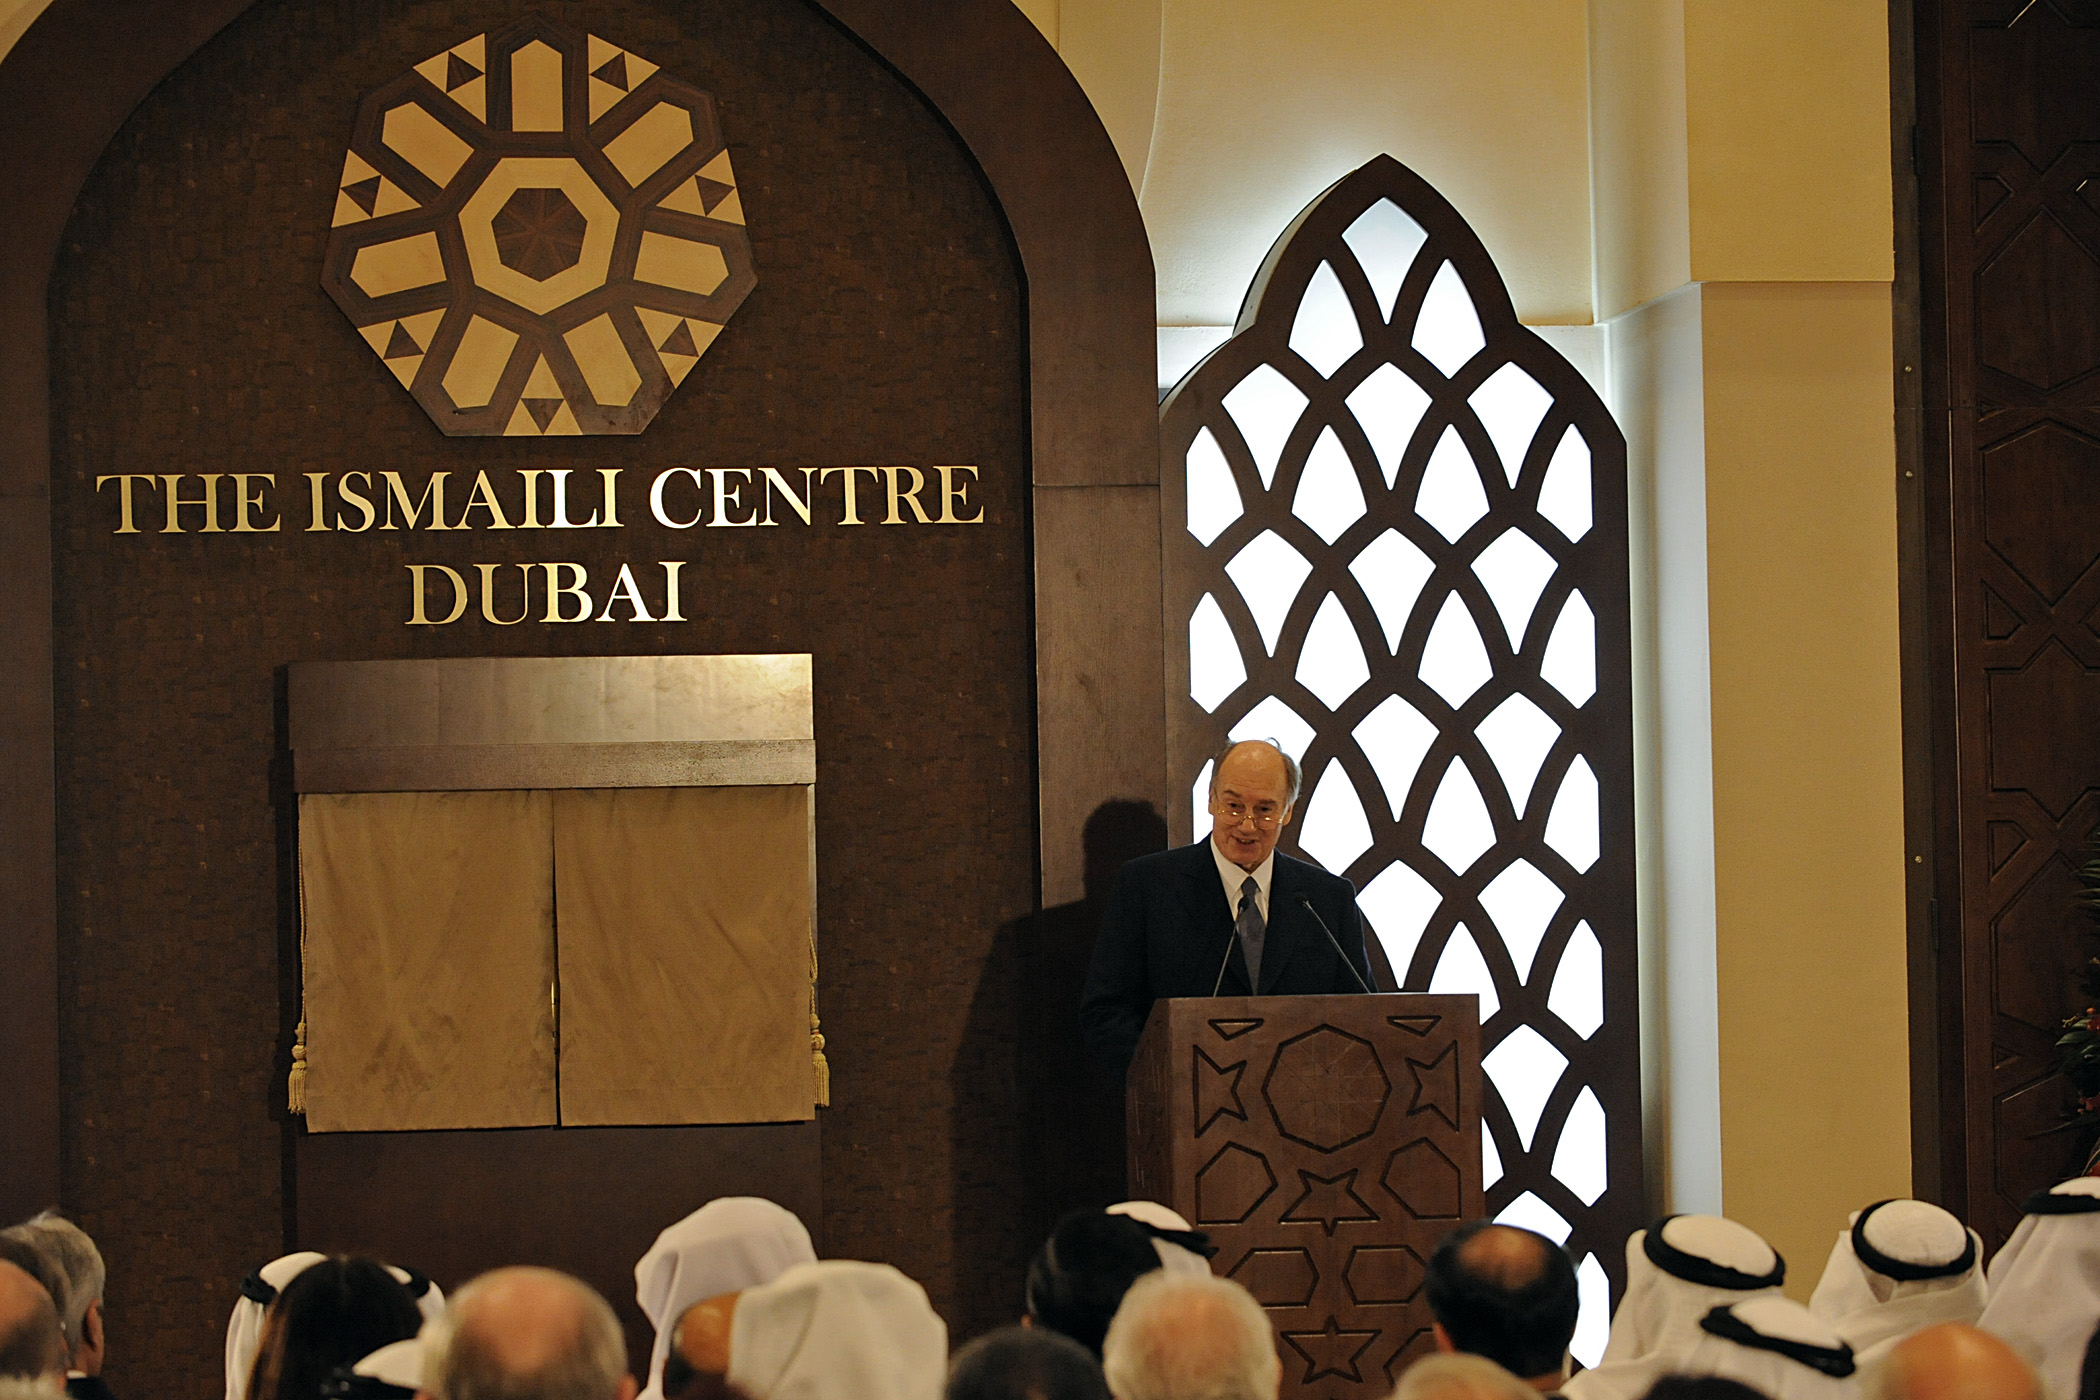 Mawlana Hazar Imam addresses the guests at the opening ceremony of the Ismaili Centre Dubai. Photo: Gary Otte